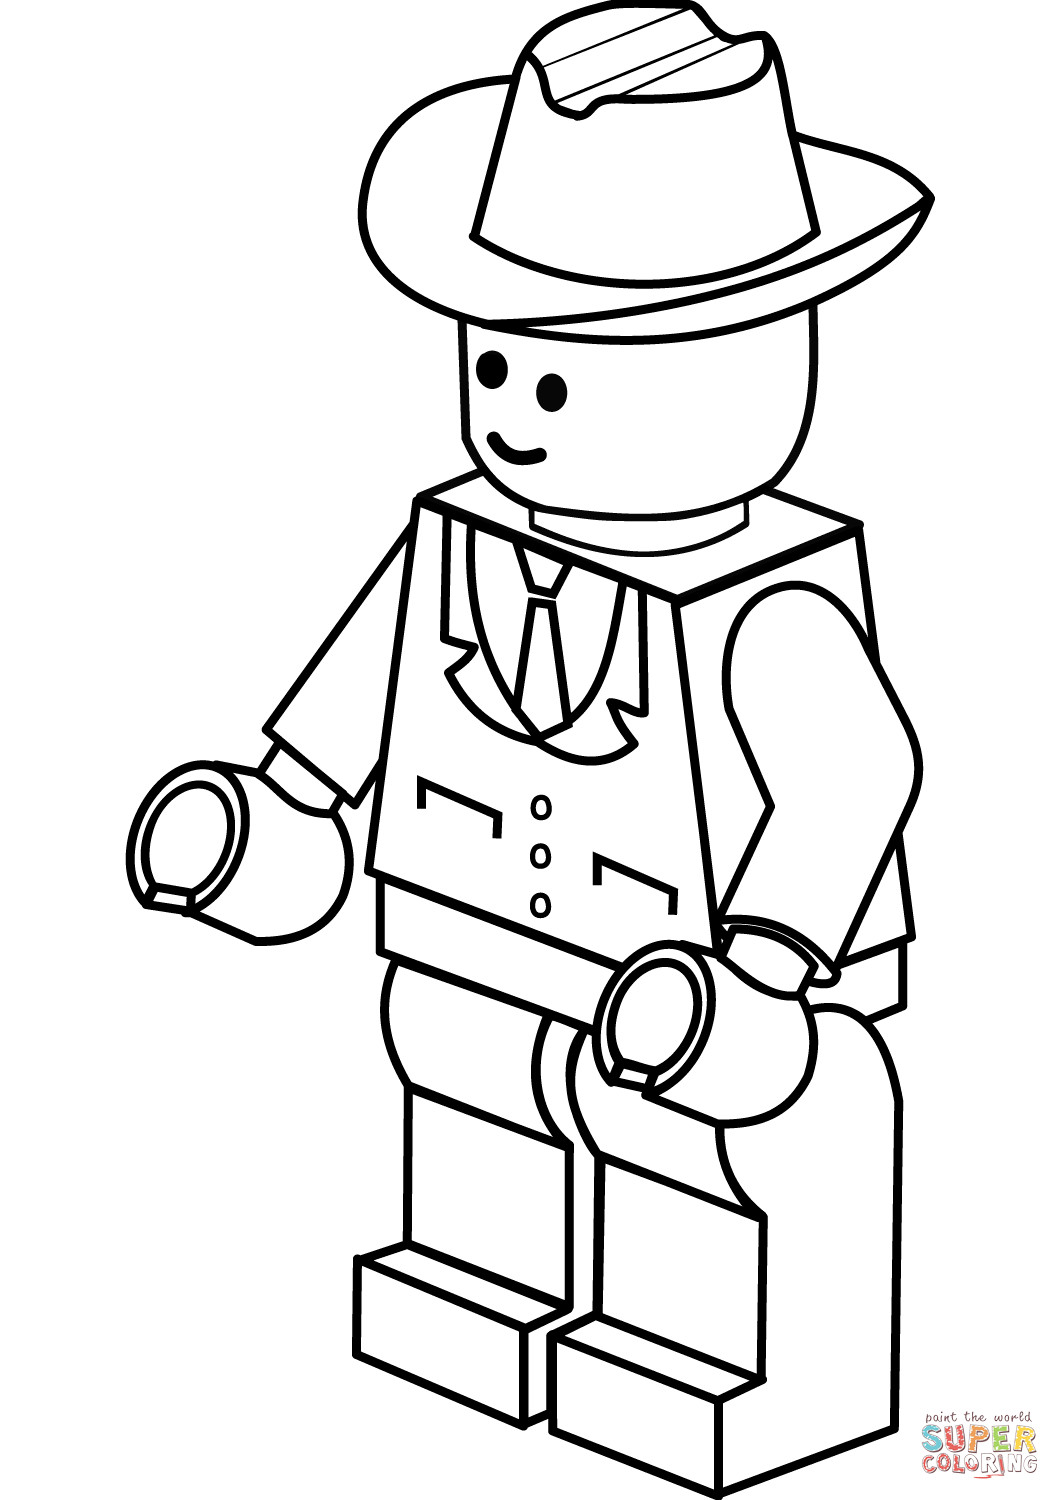 1060x1500 Lego Man In Cowboy Hat Coloring Page Free Printable Pages